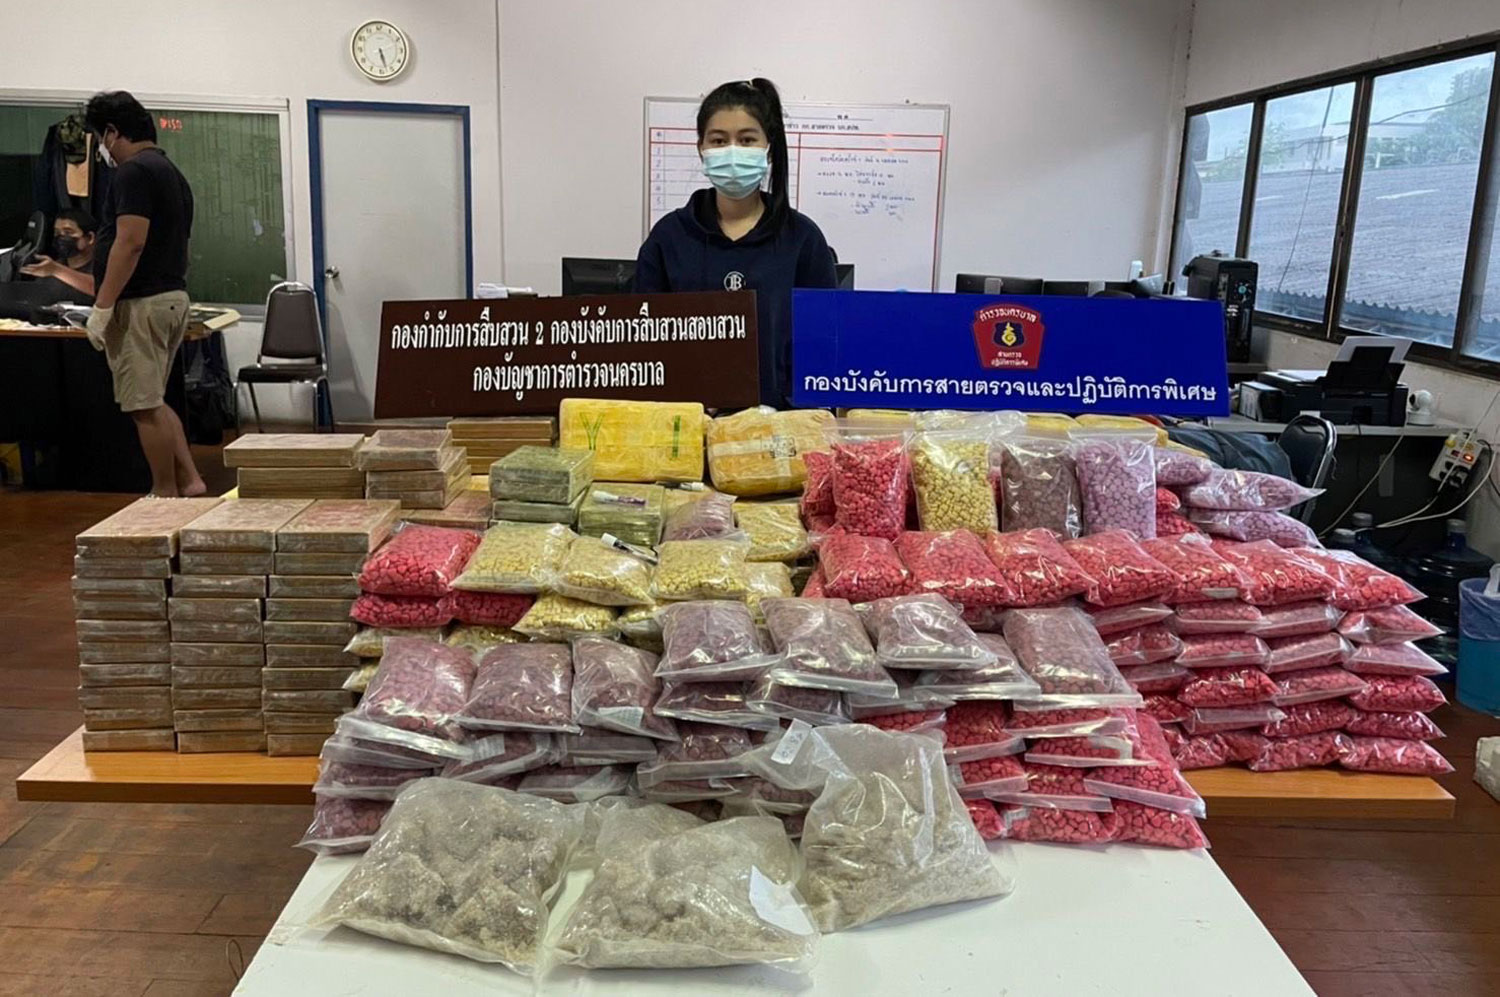 Drug suspect Angkhawipha Karnbanjong, 20, stands behind packages of heroin, methamphetamine, ecstasy pills and crystal meth worth about 157 million baht, seized from one of two vehicles used for drug smuggling.(Photo supplied: Wassayos Ngamkham)